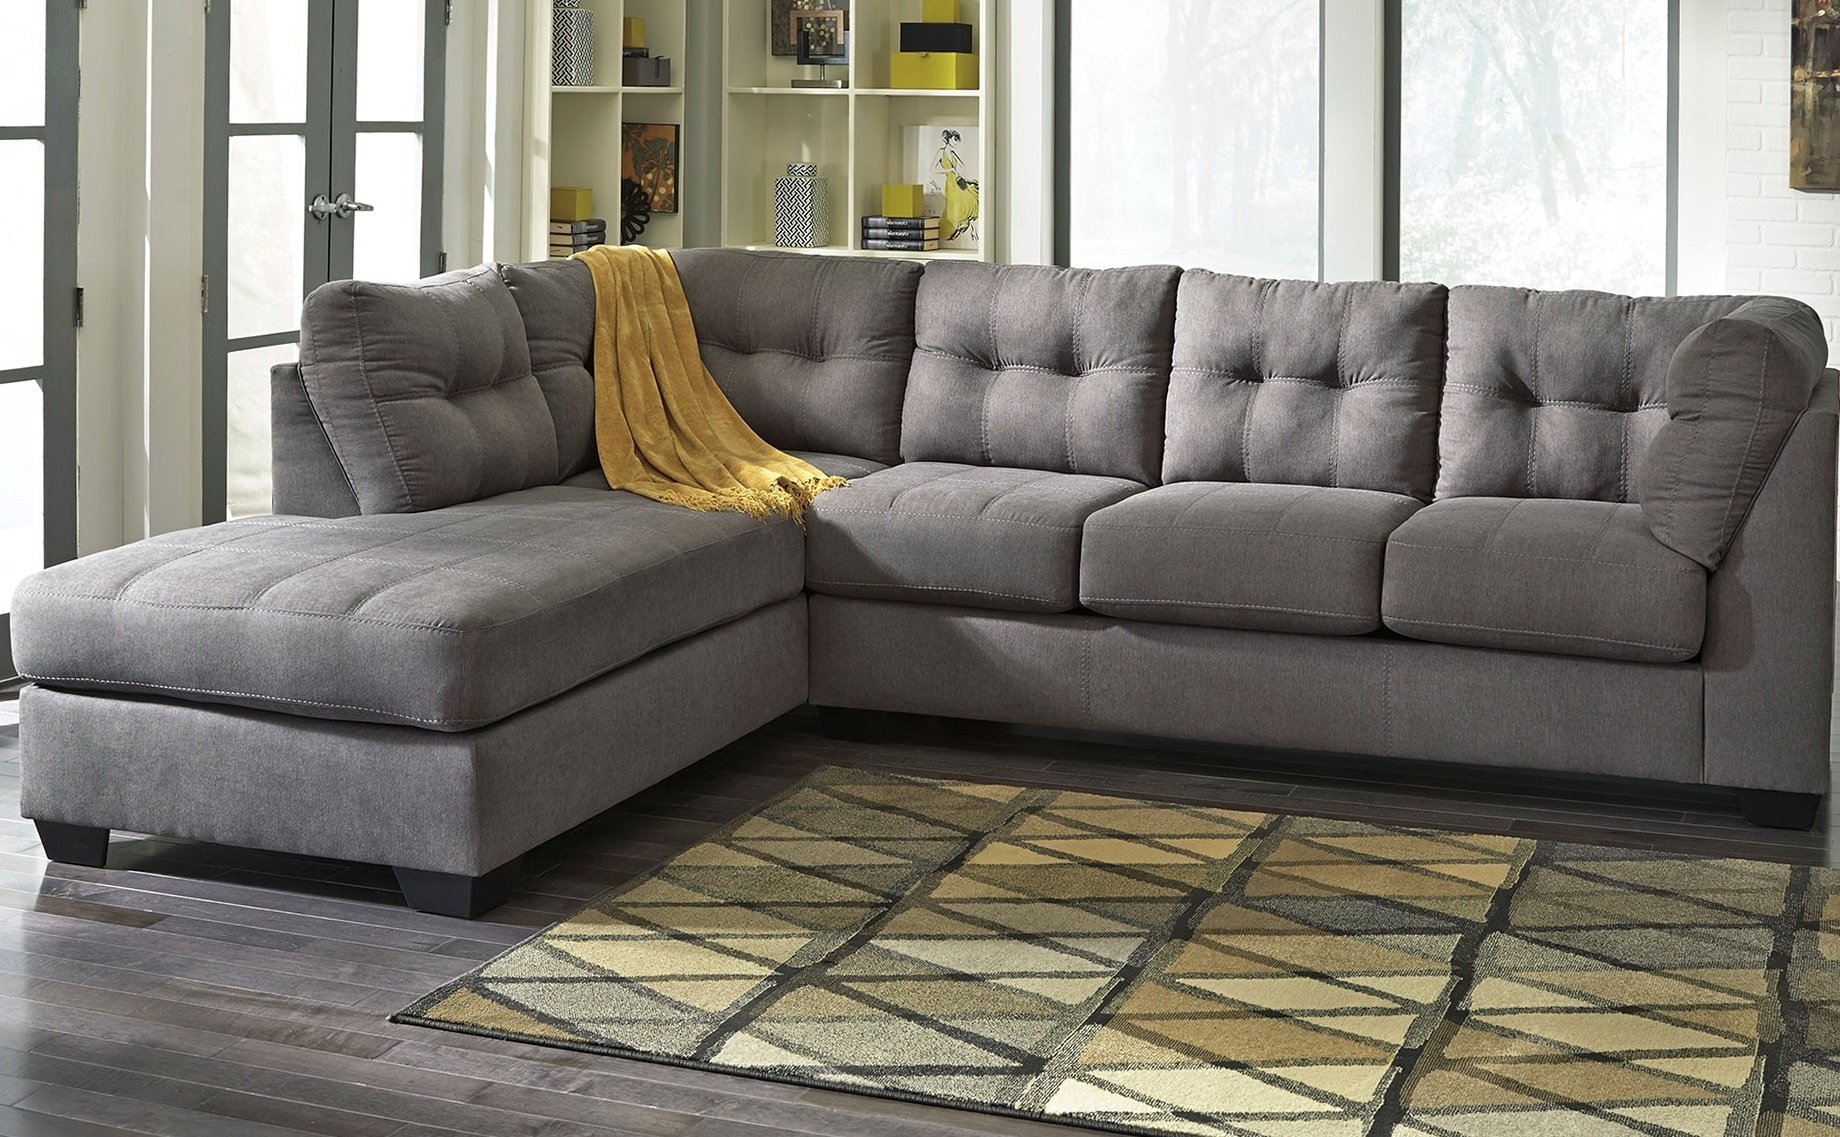 Widely Used Sectional Sofas With Chaise Lounge Pertaining To Sofa ~ Awesome Grey Sectional Sofa Perfect Grey Sectional Sofa (View 7 of 15)